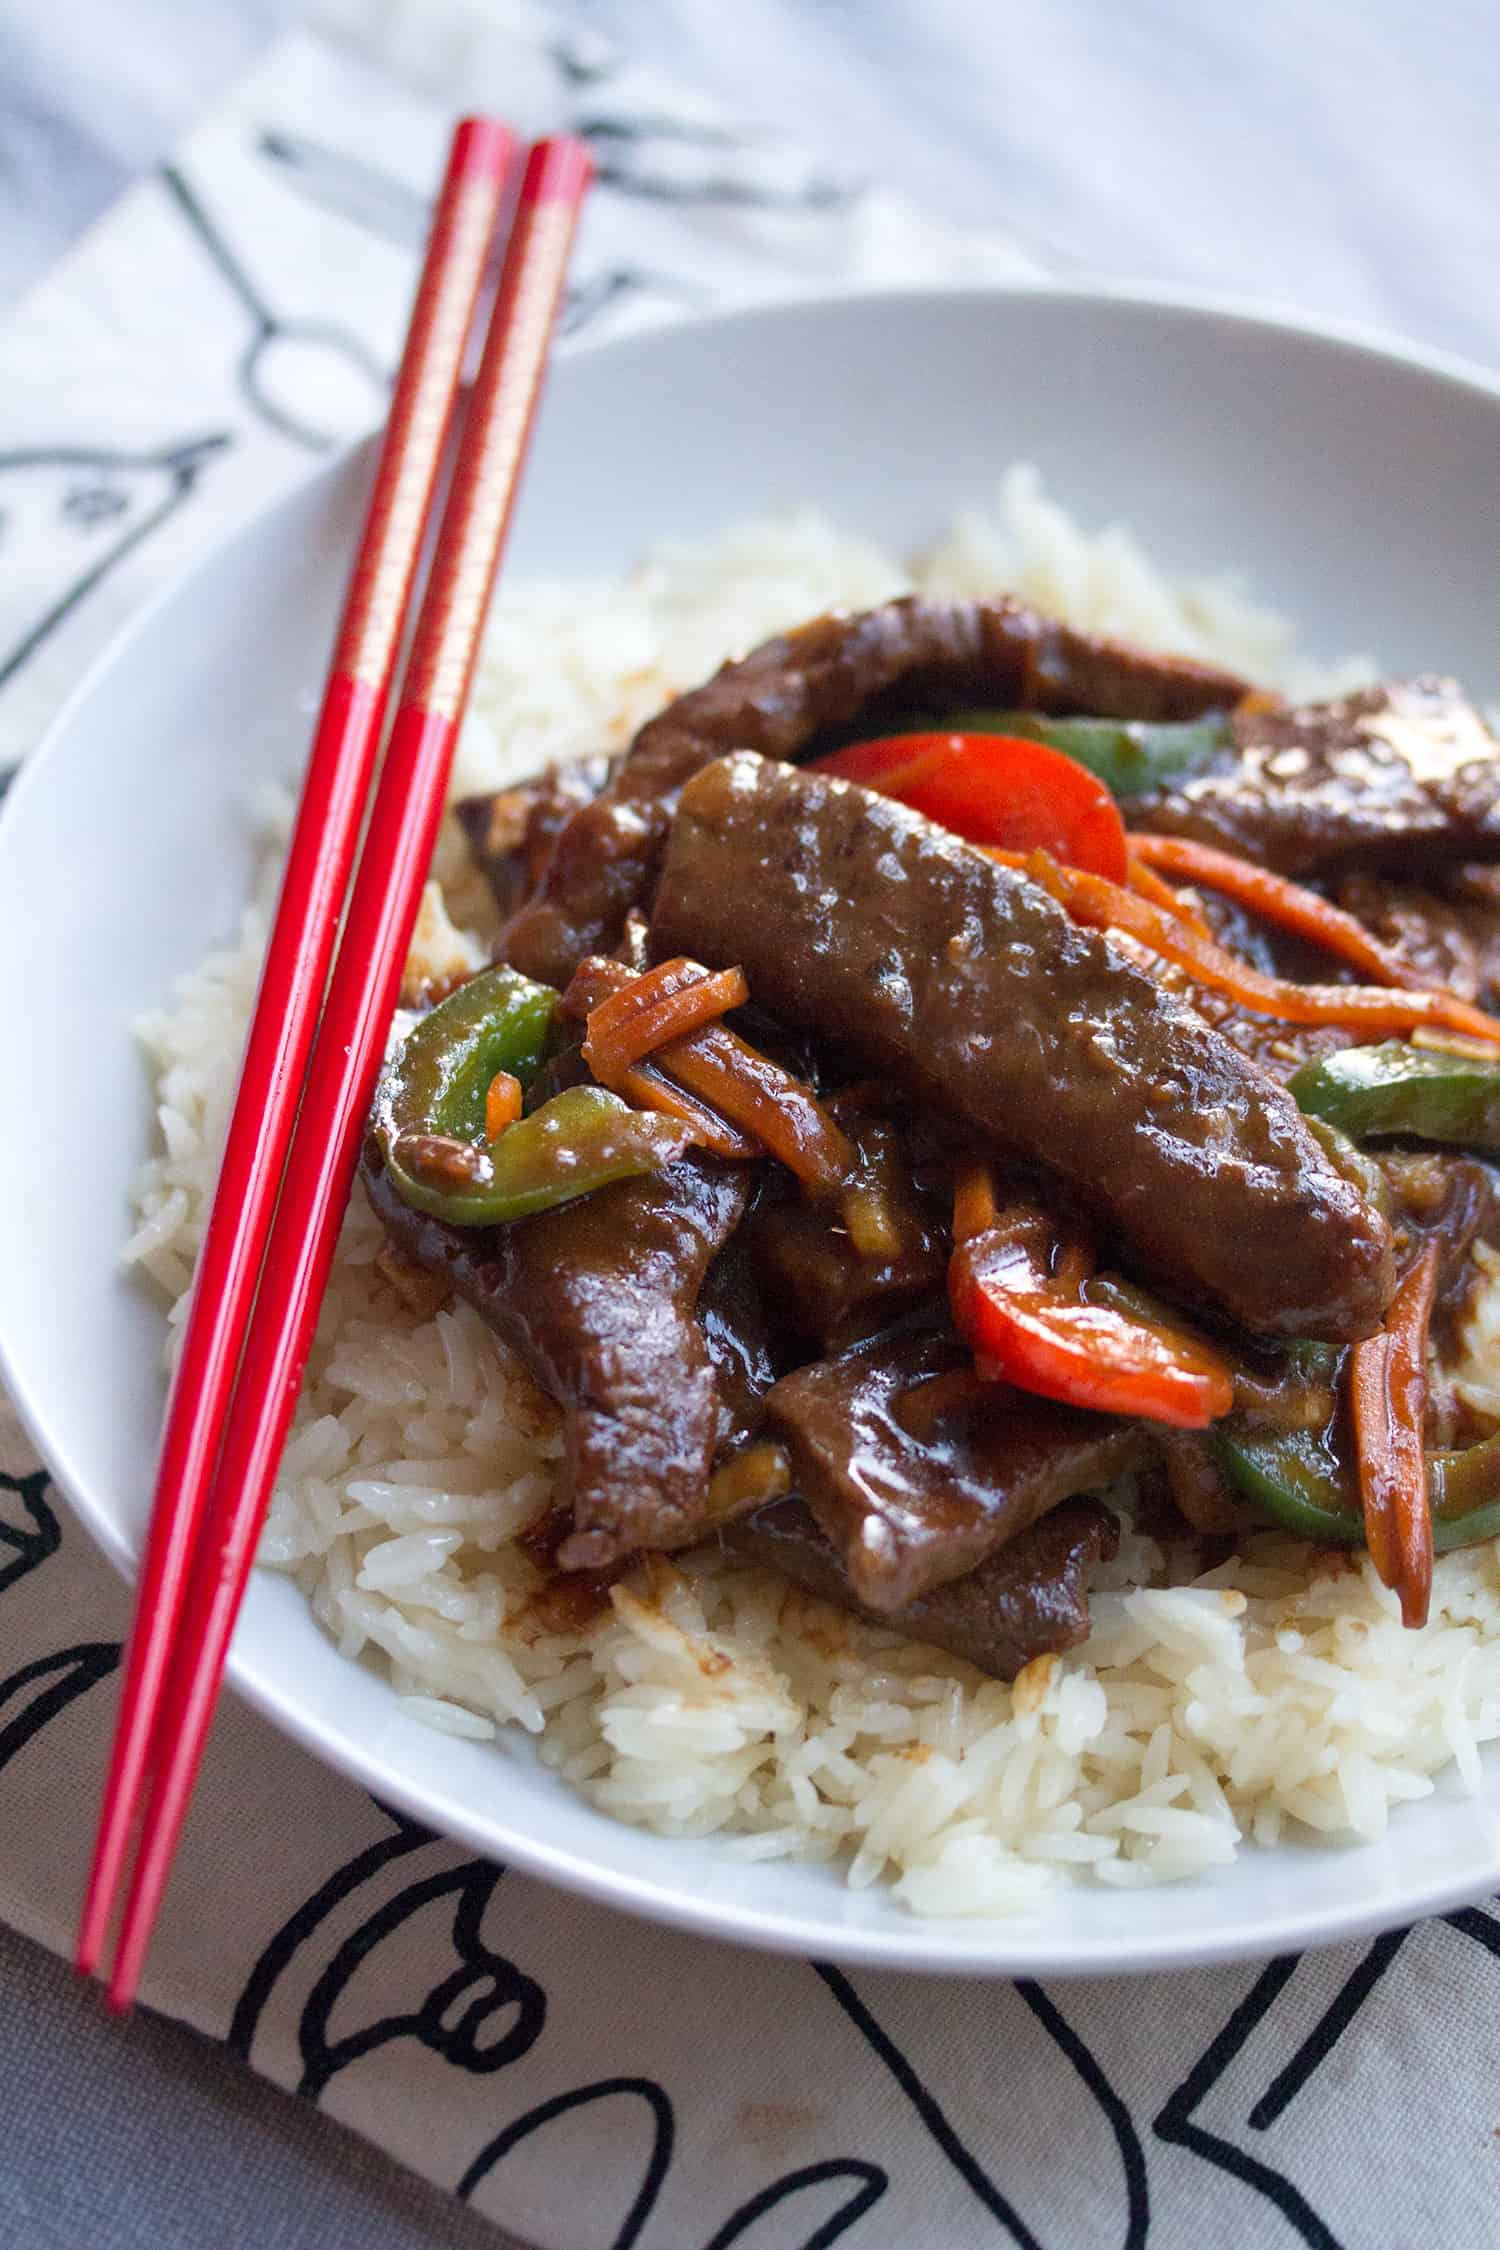 Takeout Fakeout: Healthier Ginger Beef Stir Fry